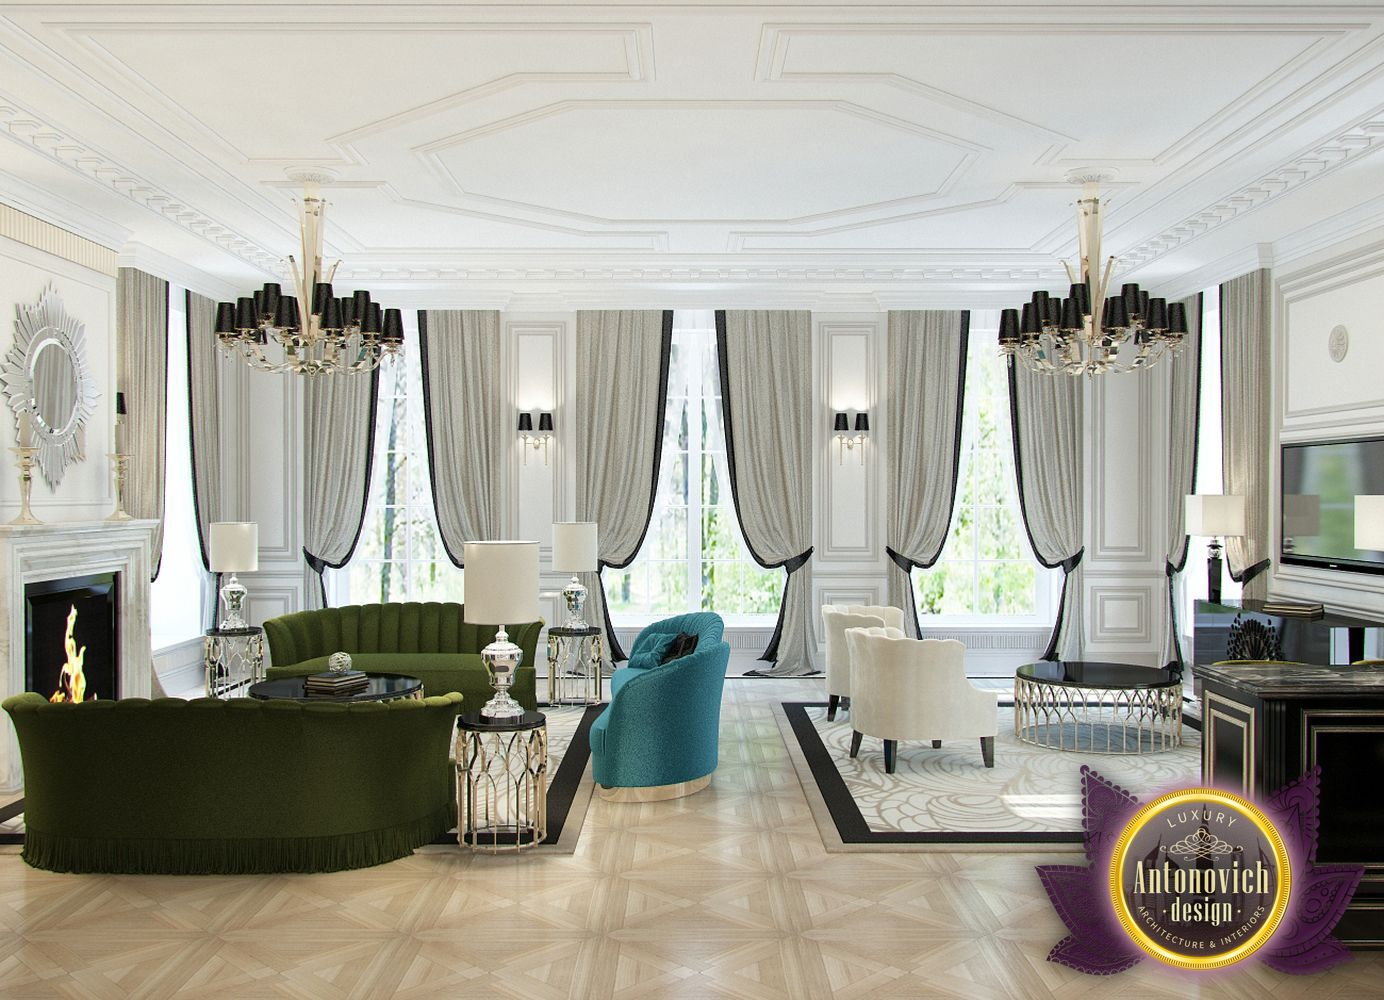 Nigeiradesign the house interior design in nigeria from for Interior home designs in nigeria